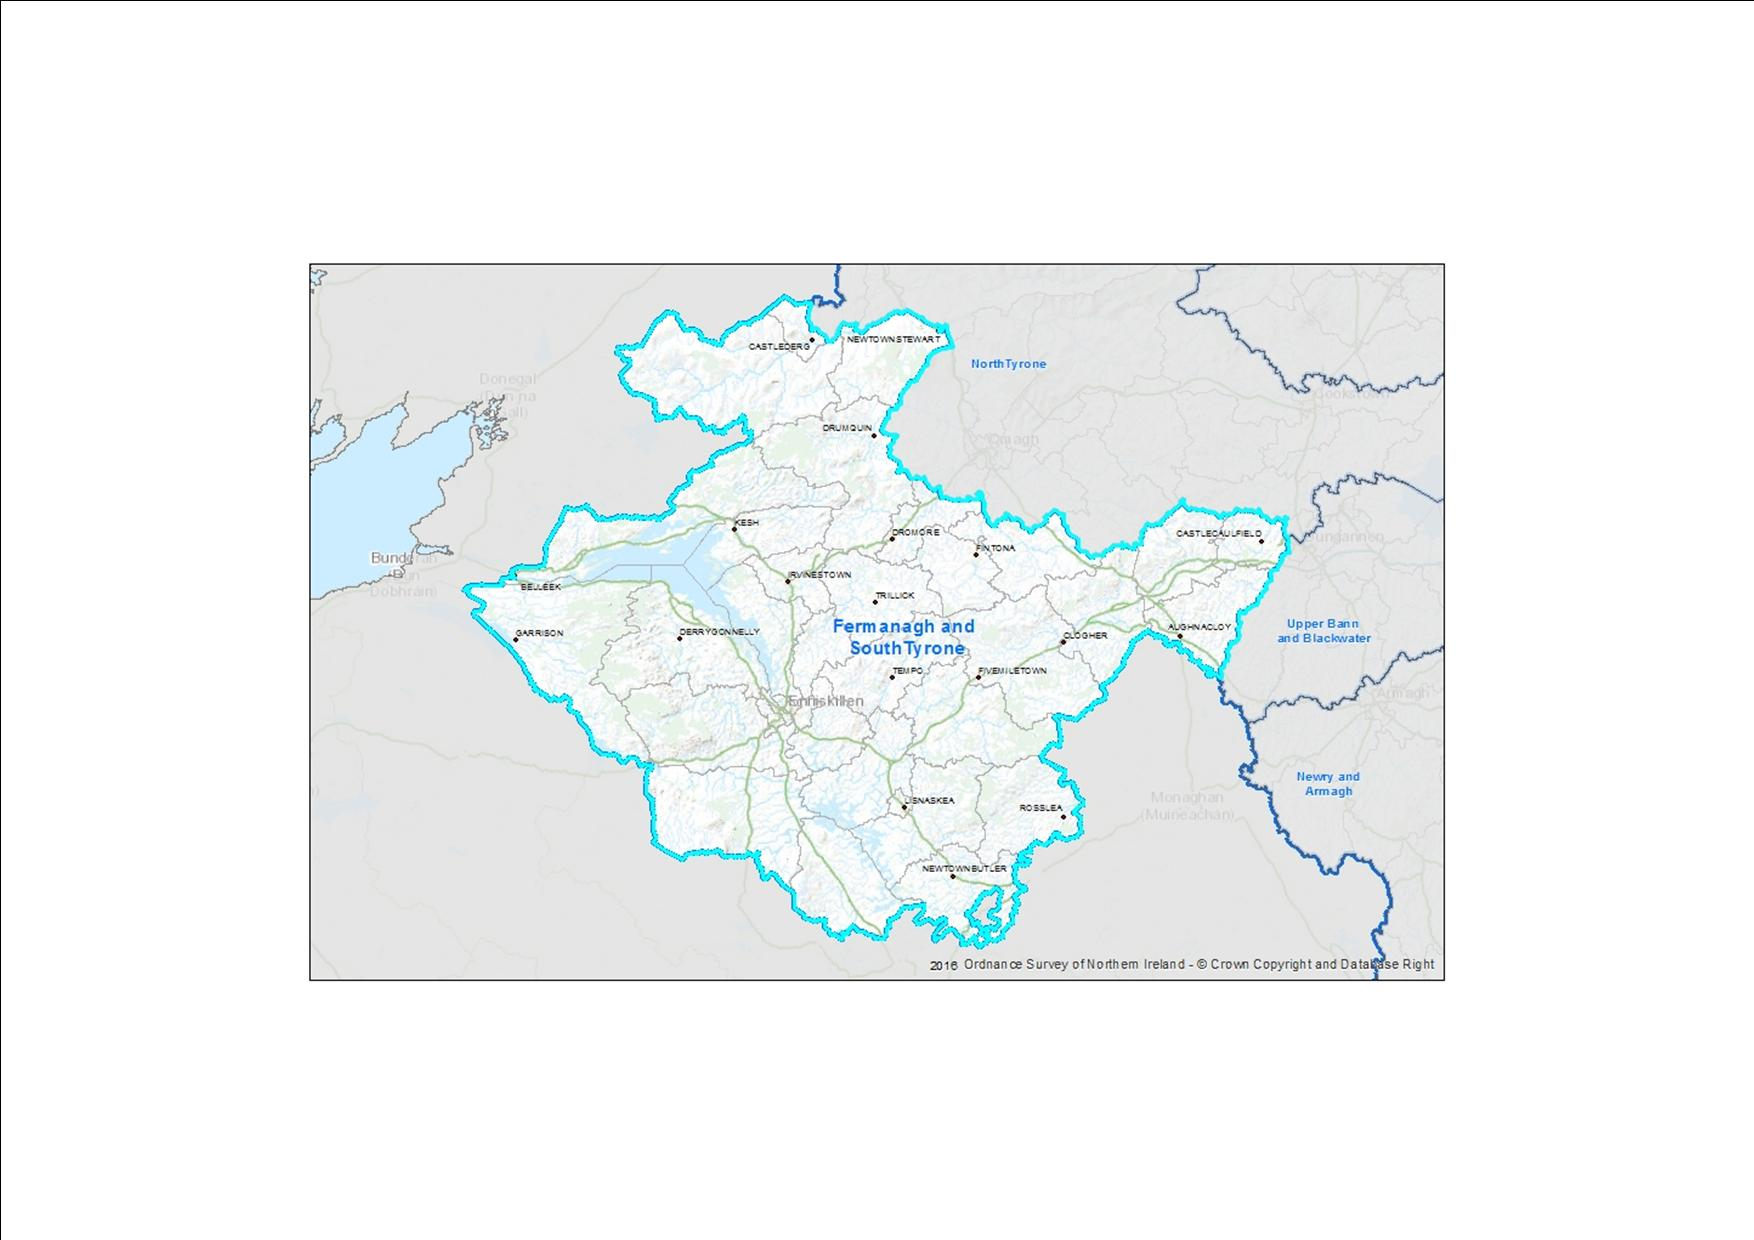 Provisional Proposals Fermanagh and South Tyrone